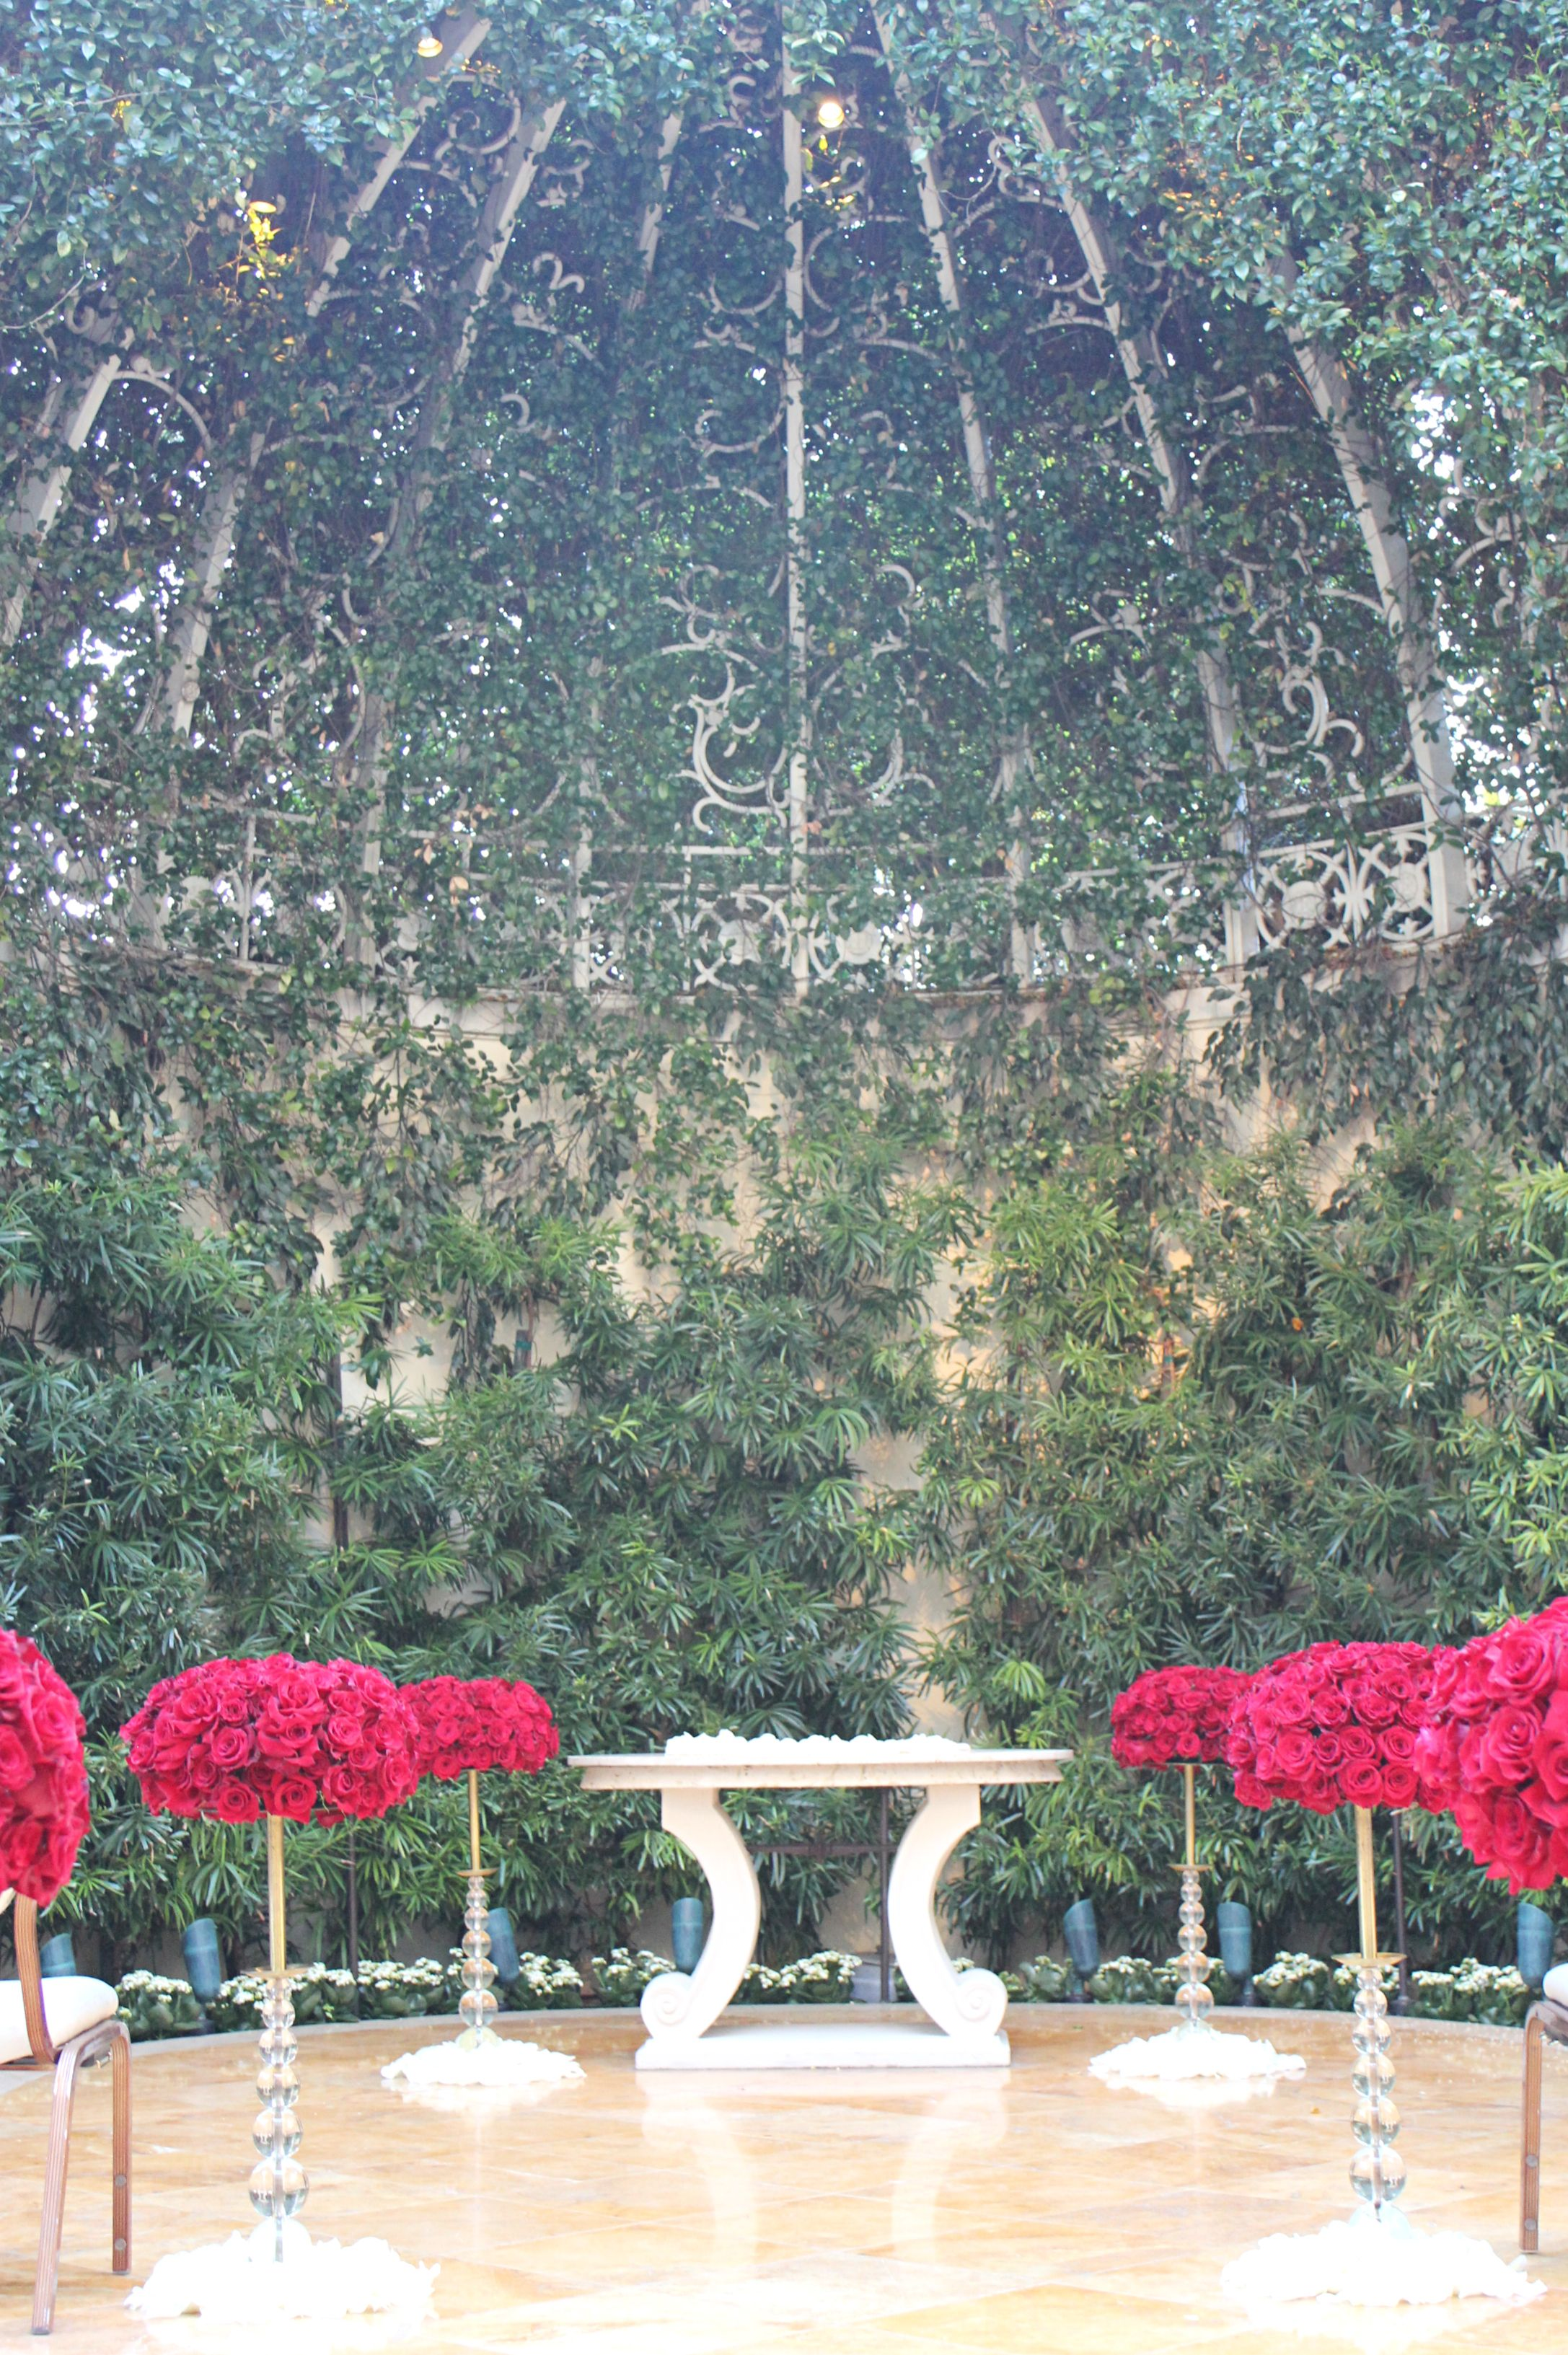 Primrose Courtyard In The Wedding Salons At The Wynn Is A